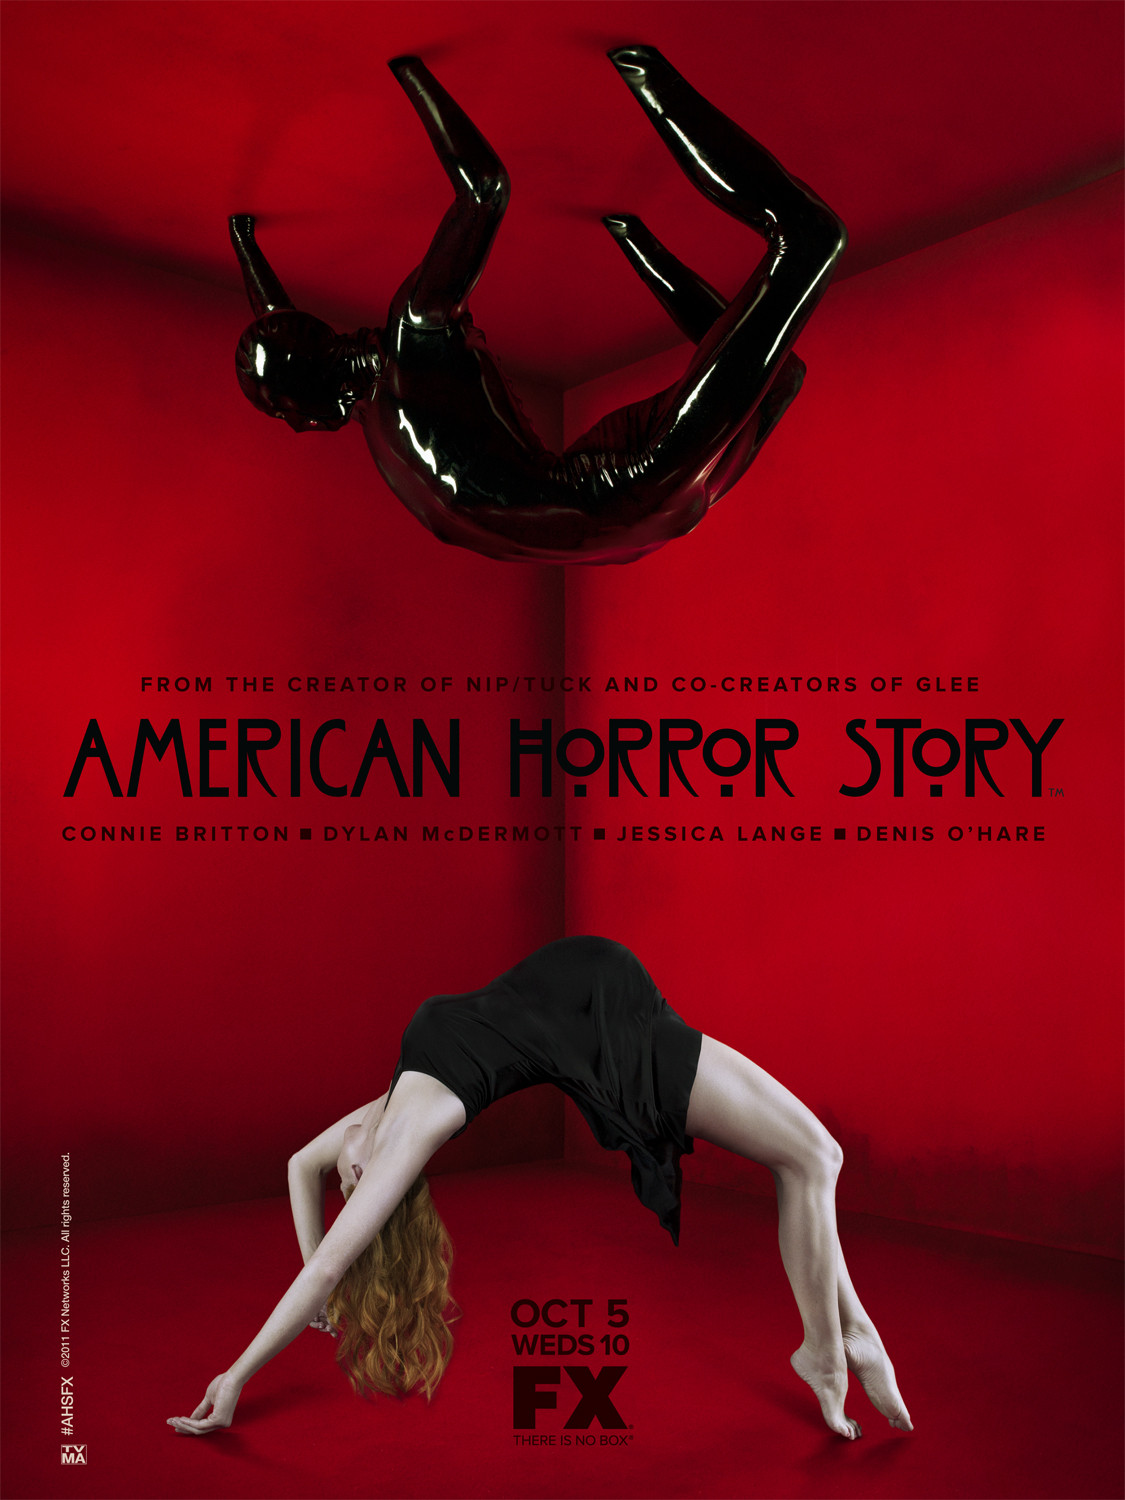 American Horror Story - Season 1 - New Promotional Poster